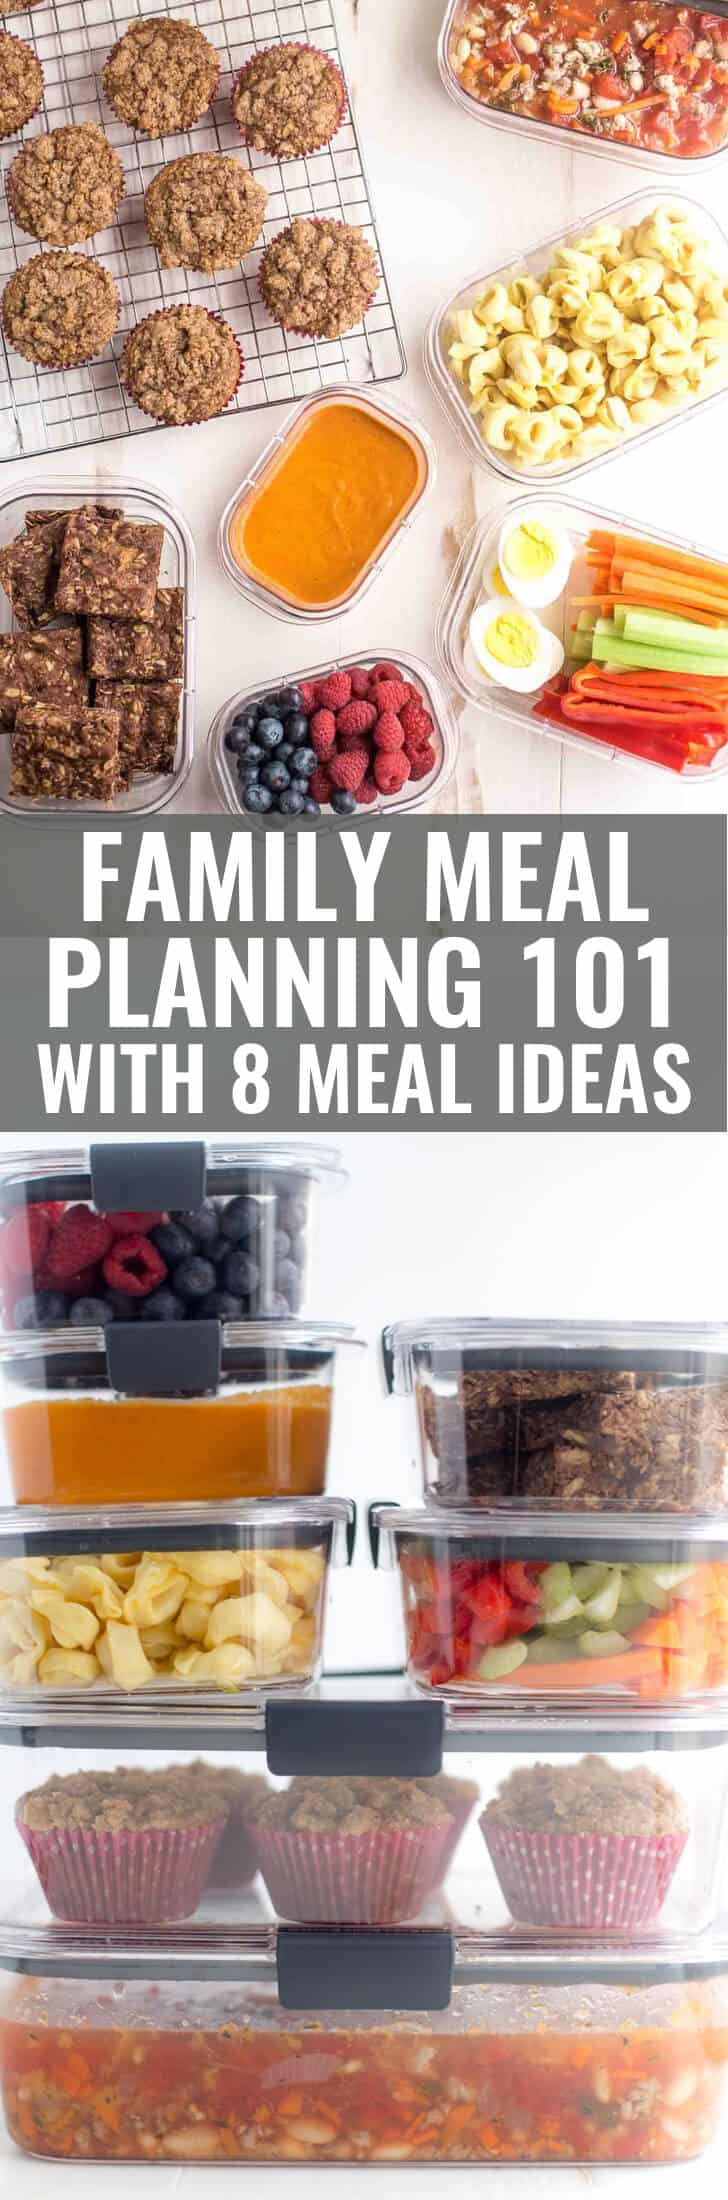 Family Meal Planning Basics with 8 ideas for easy family meals